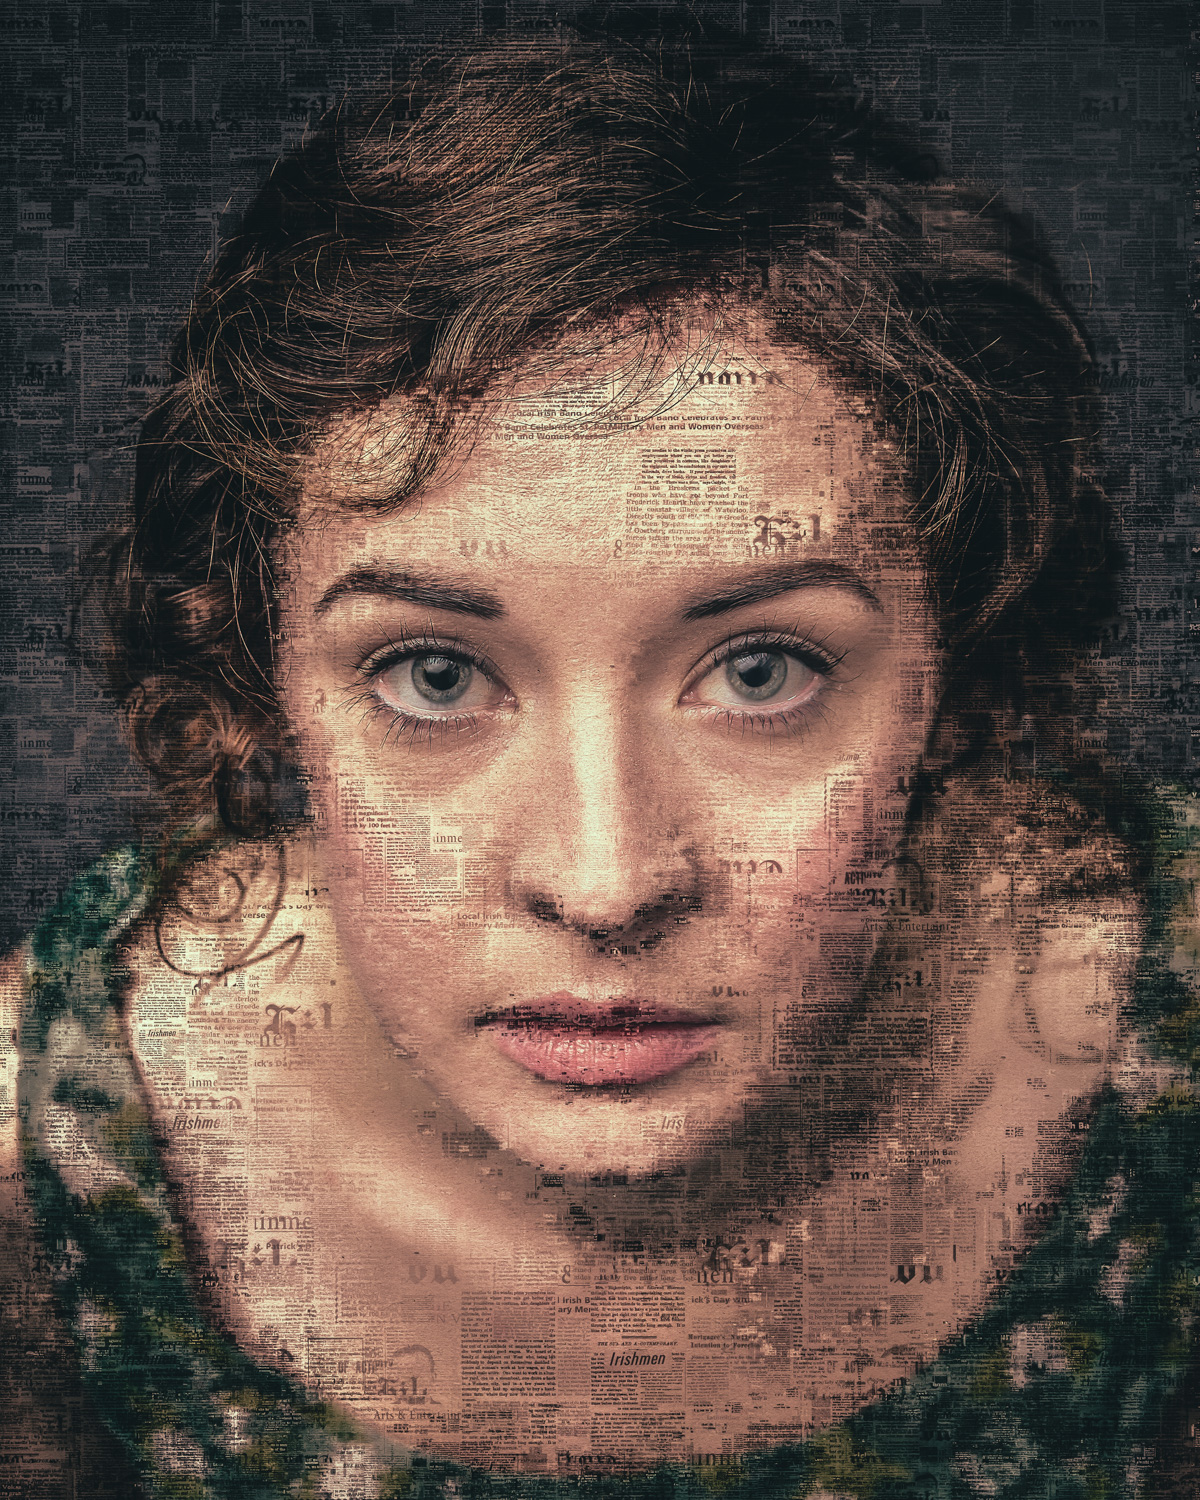 All My Sons - Portraits - danscape (45 of 80).jpg